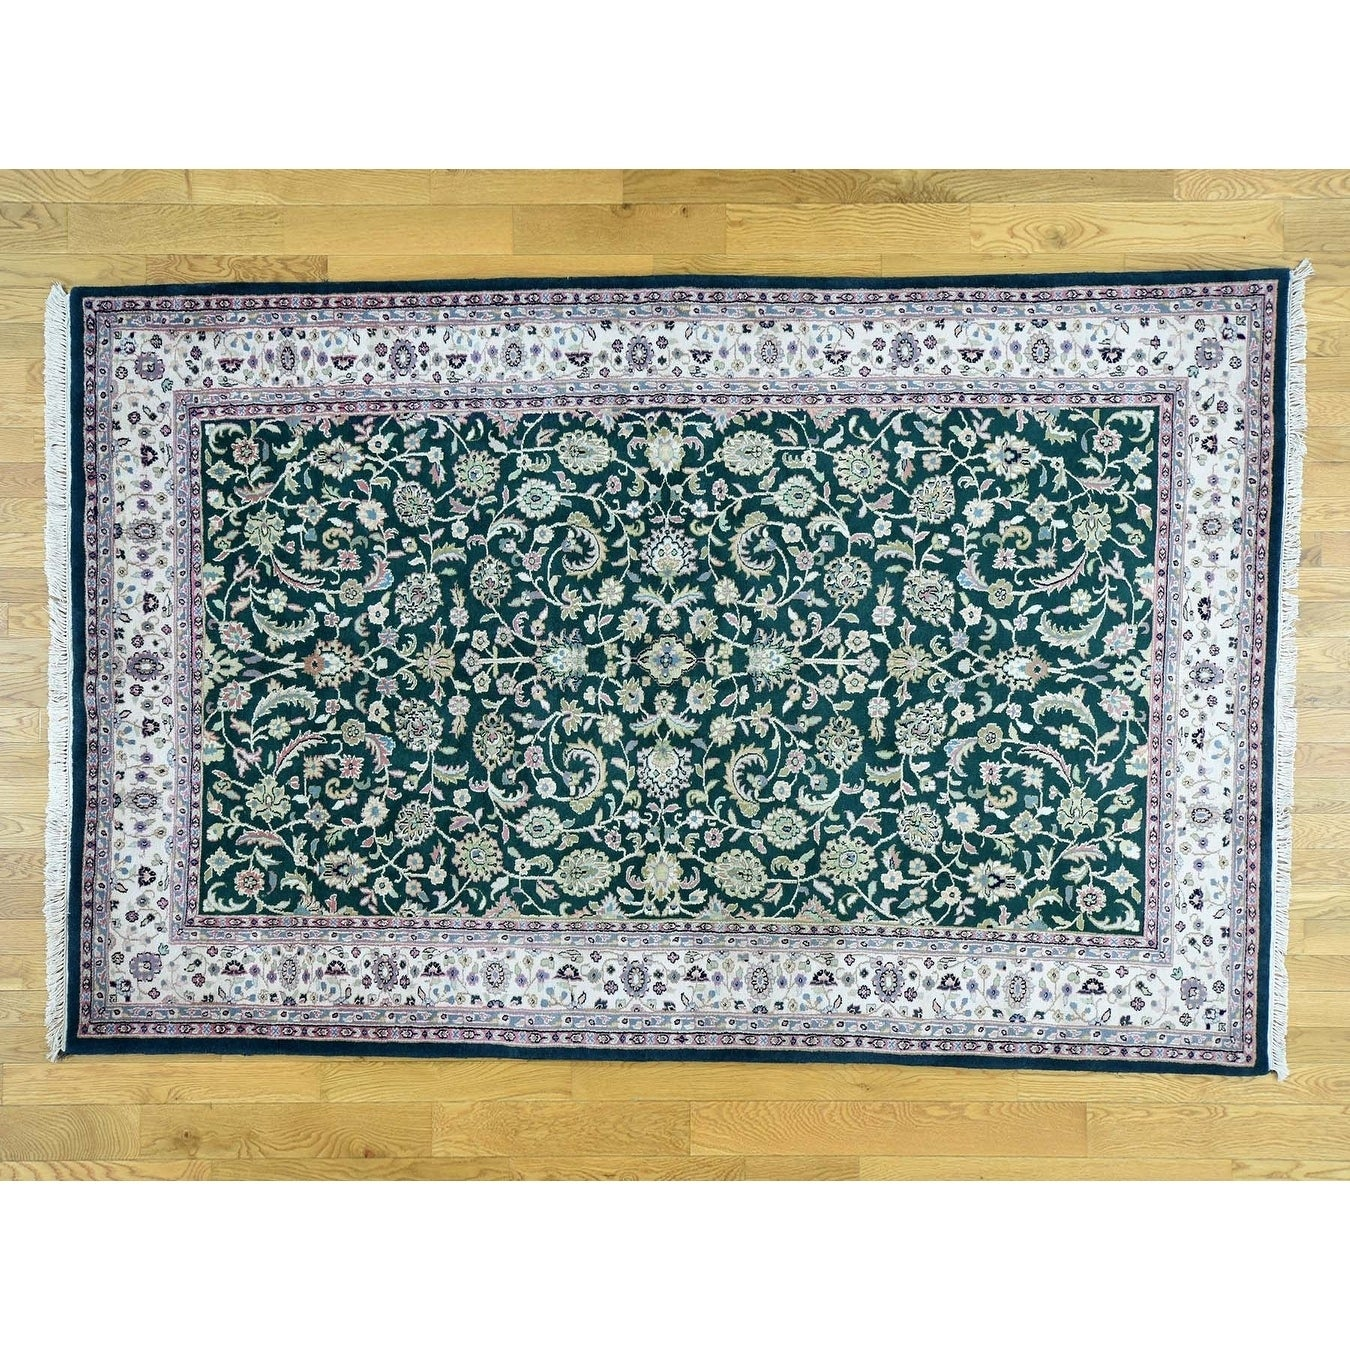 Hand Knotted Green Clearance with Wool Oriental Rug - 6 x 93